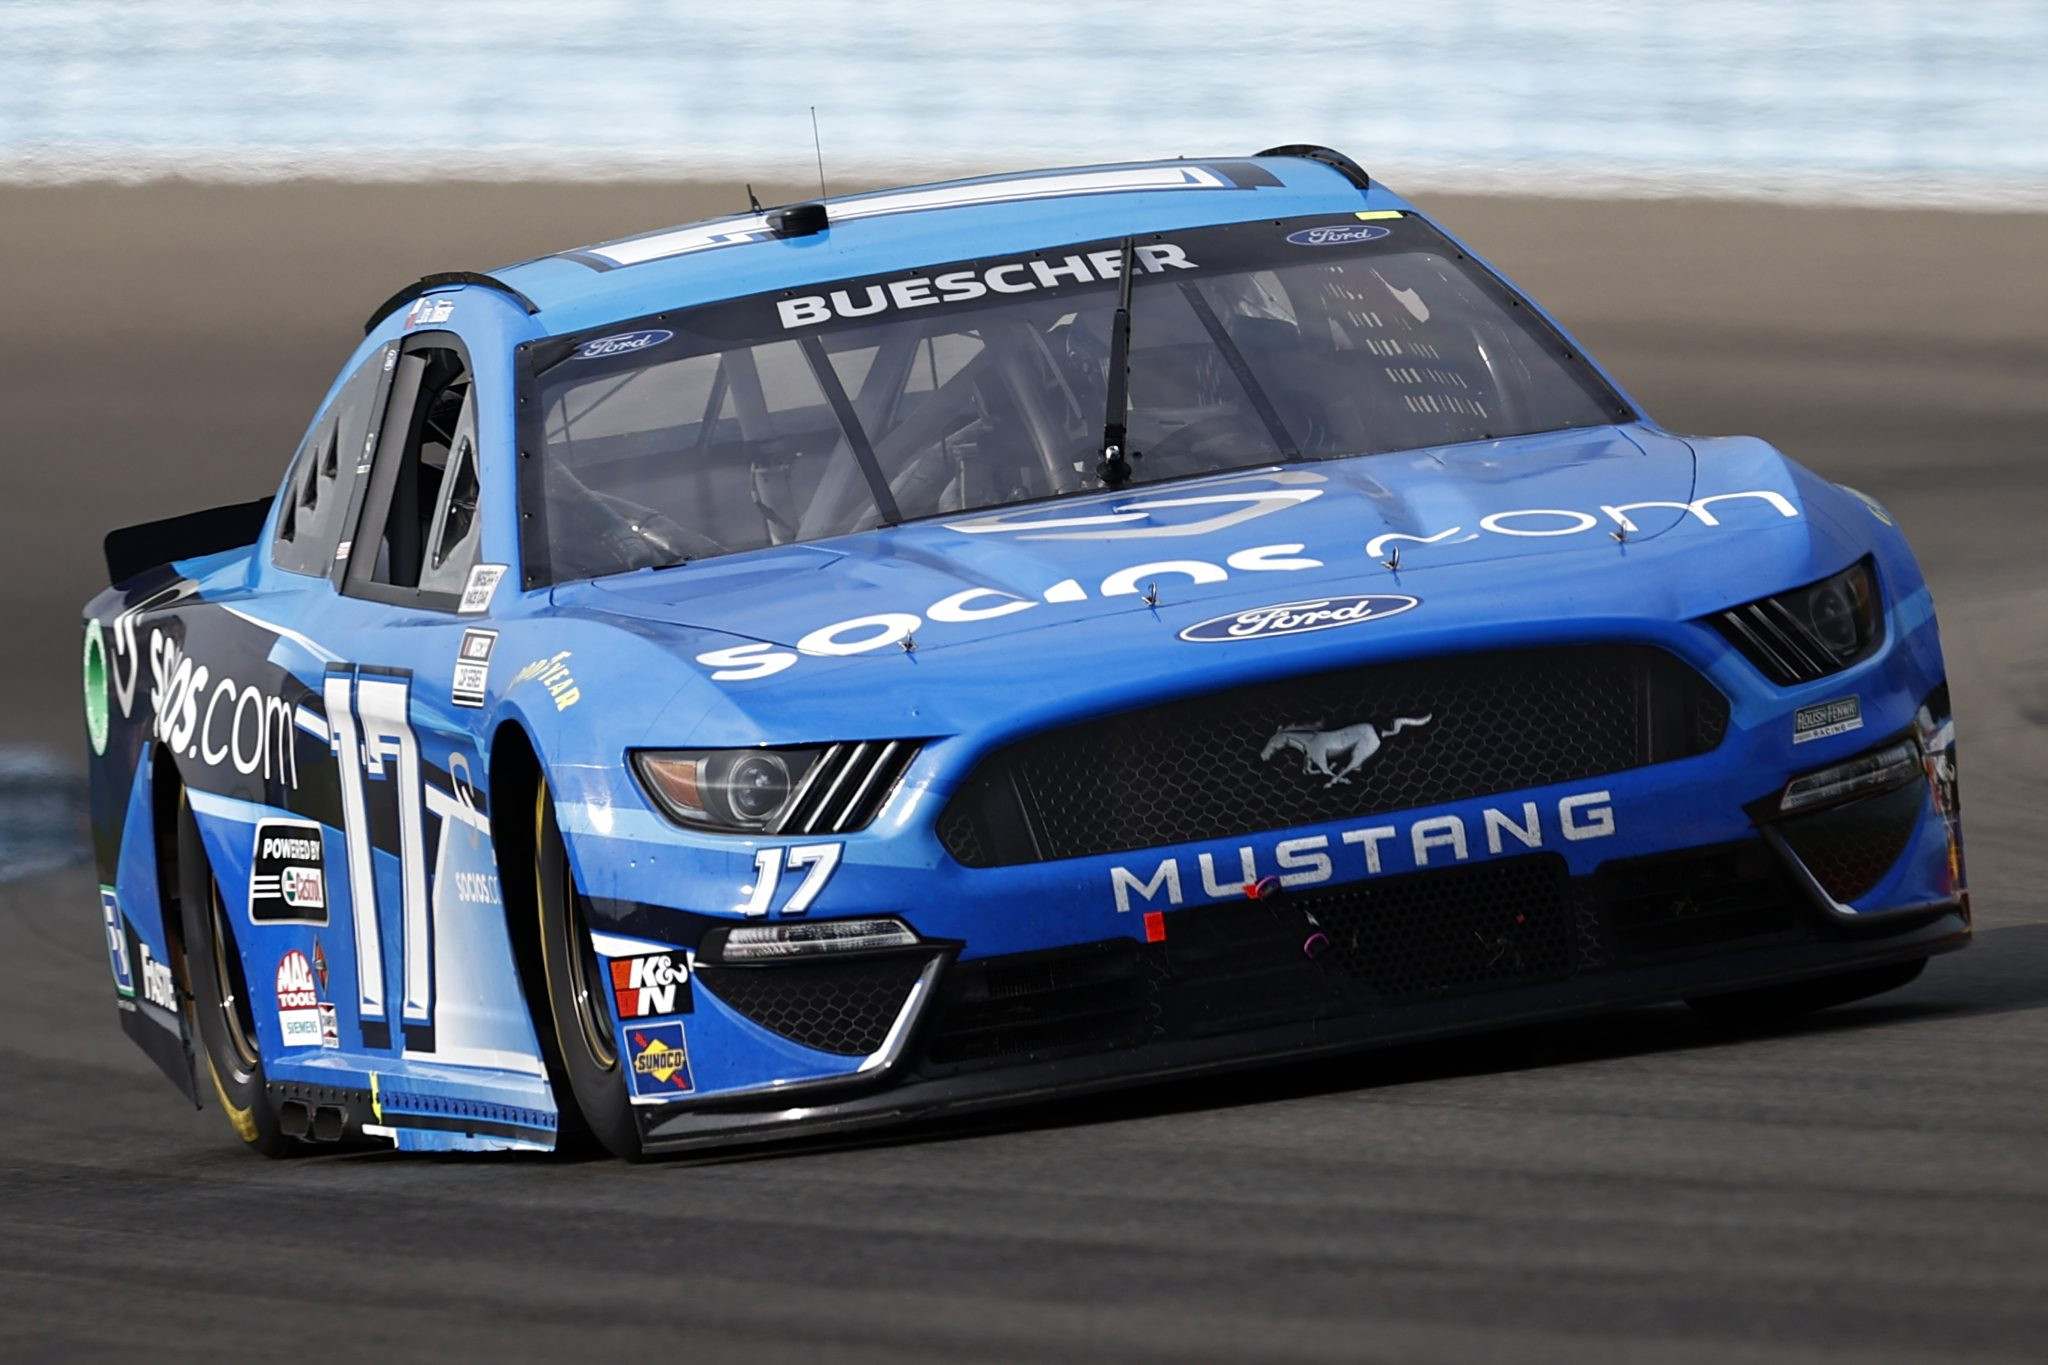 WATKINS GLEN, NEW YORK - AUGUST 08: Chris Buescher, driver of the #17 Ford, drives during the NASCAR Cup Series Go Bowling at The Glen at Watkins Glen International on August 08, 2021 in Watkins Glen, New York. (Photo by Jared C. Tilton/Getty Images) | Getty Images